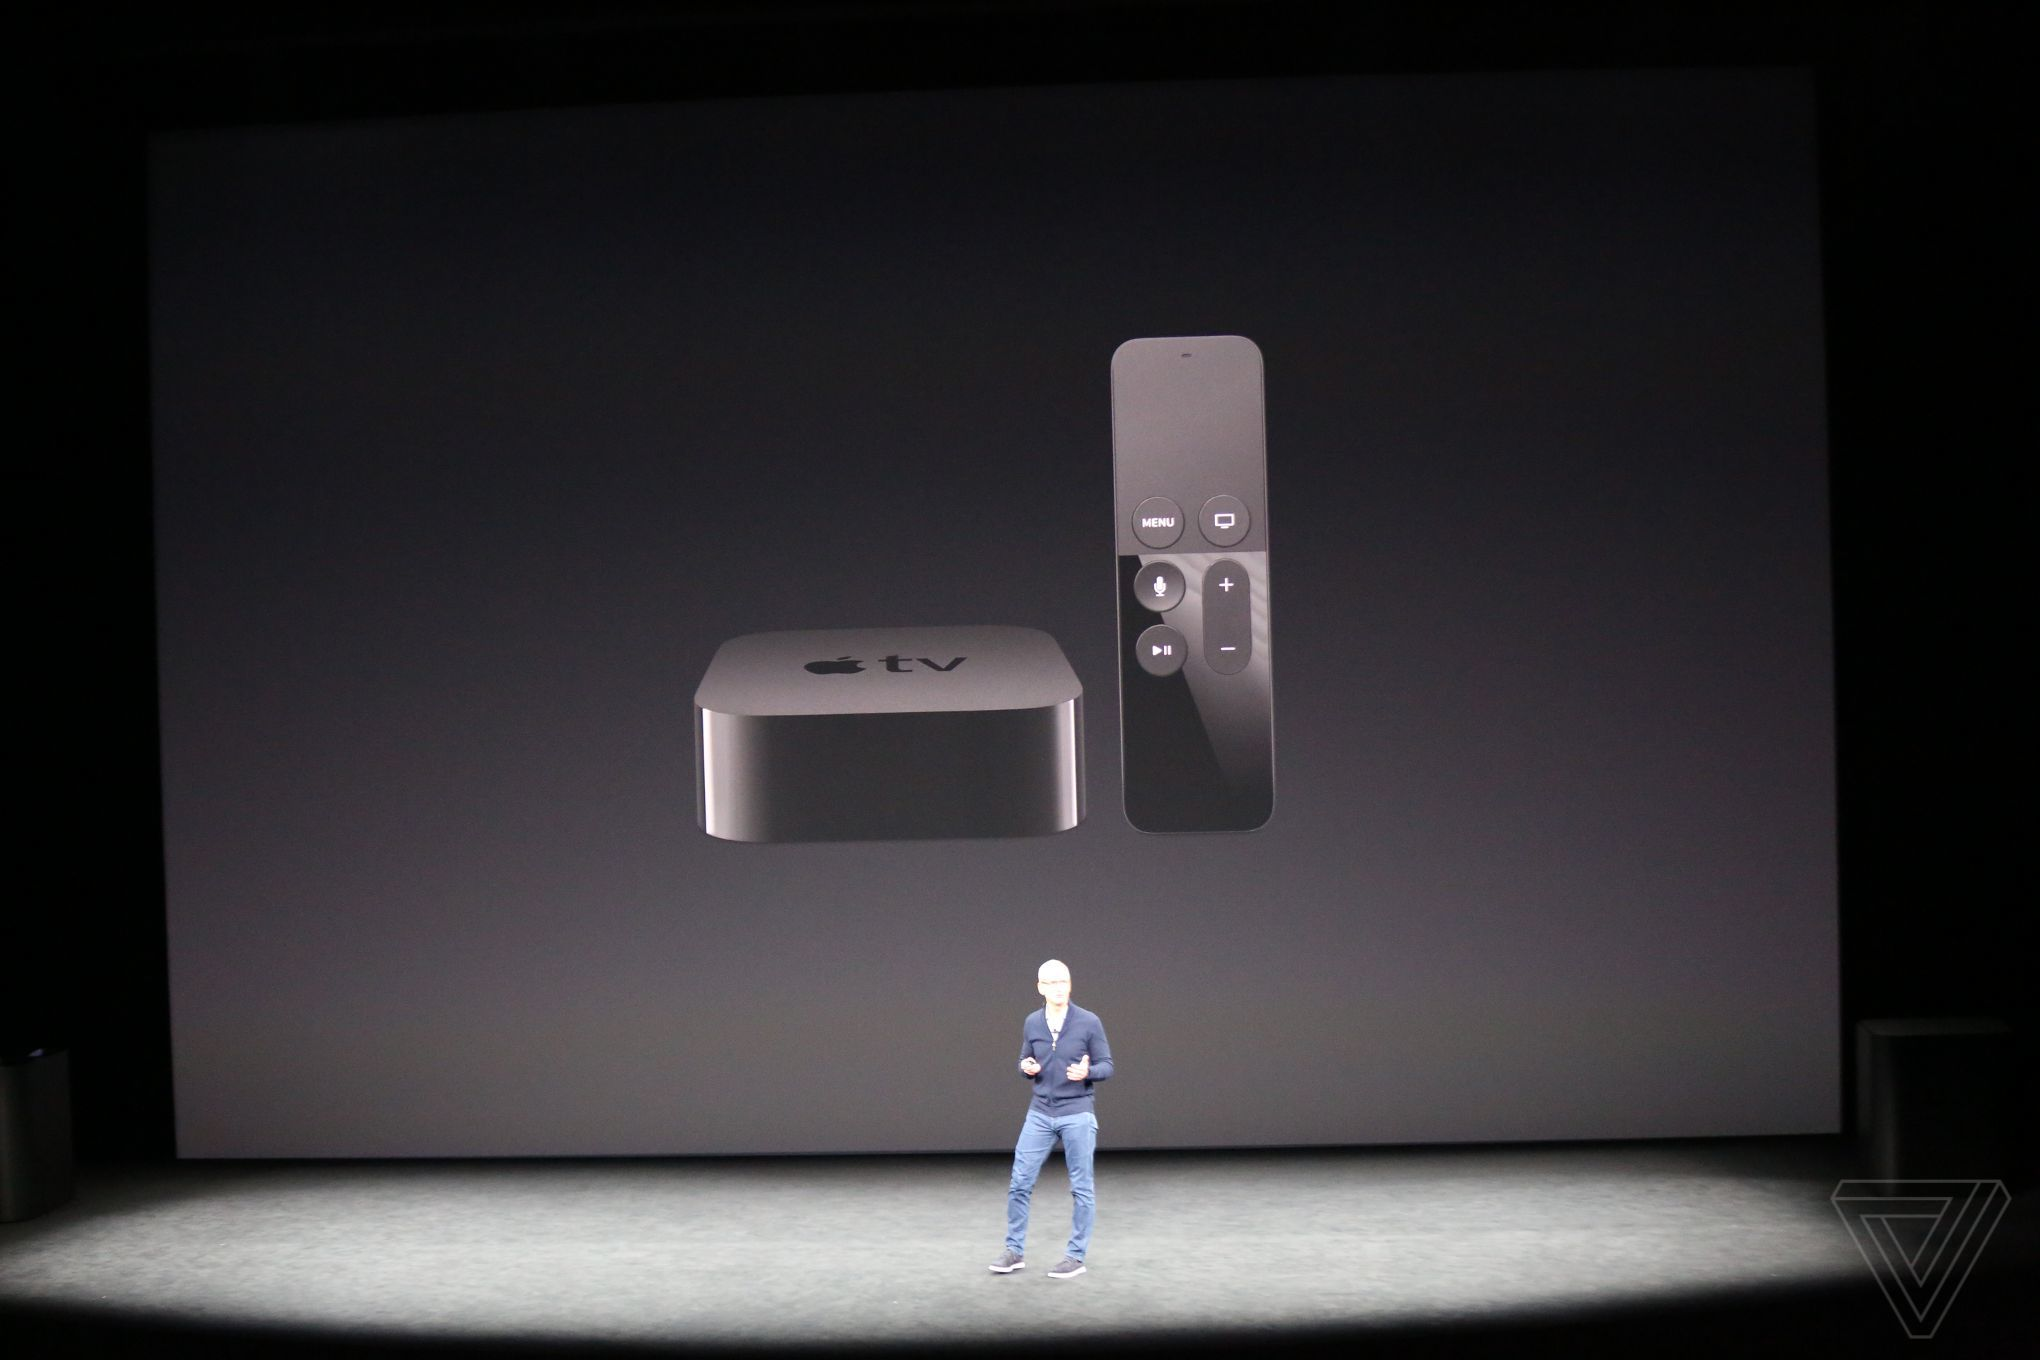 New apple tv release date in Australia